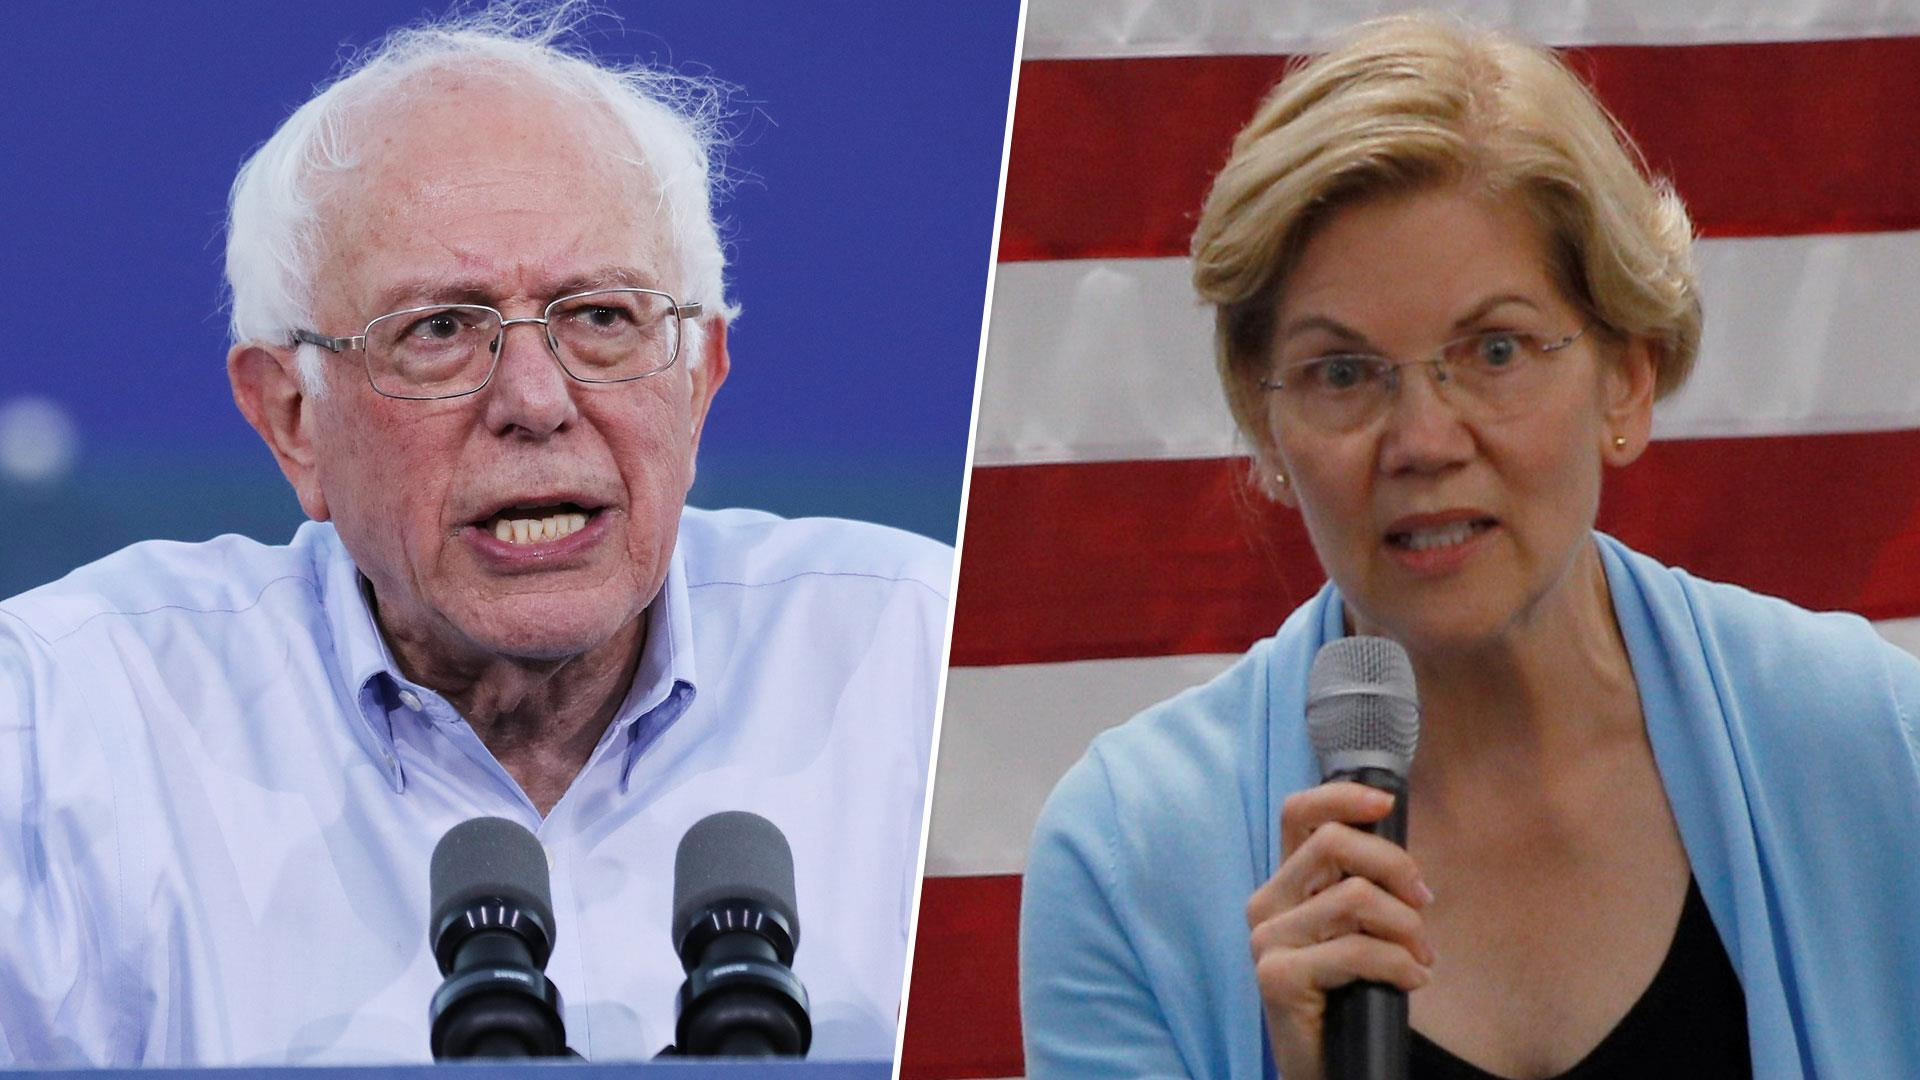 Sanders and Warren: How will they interact on the debate stage?